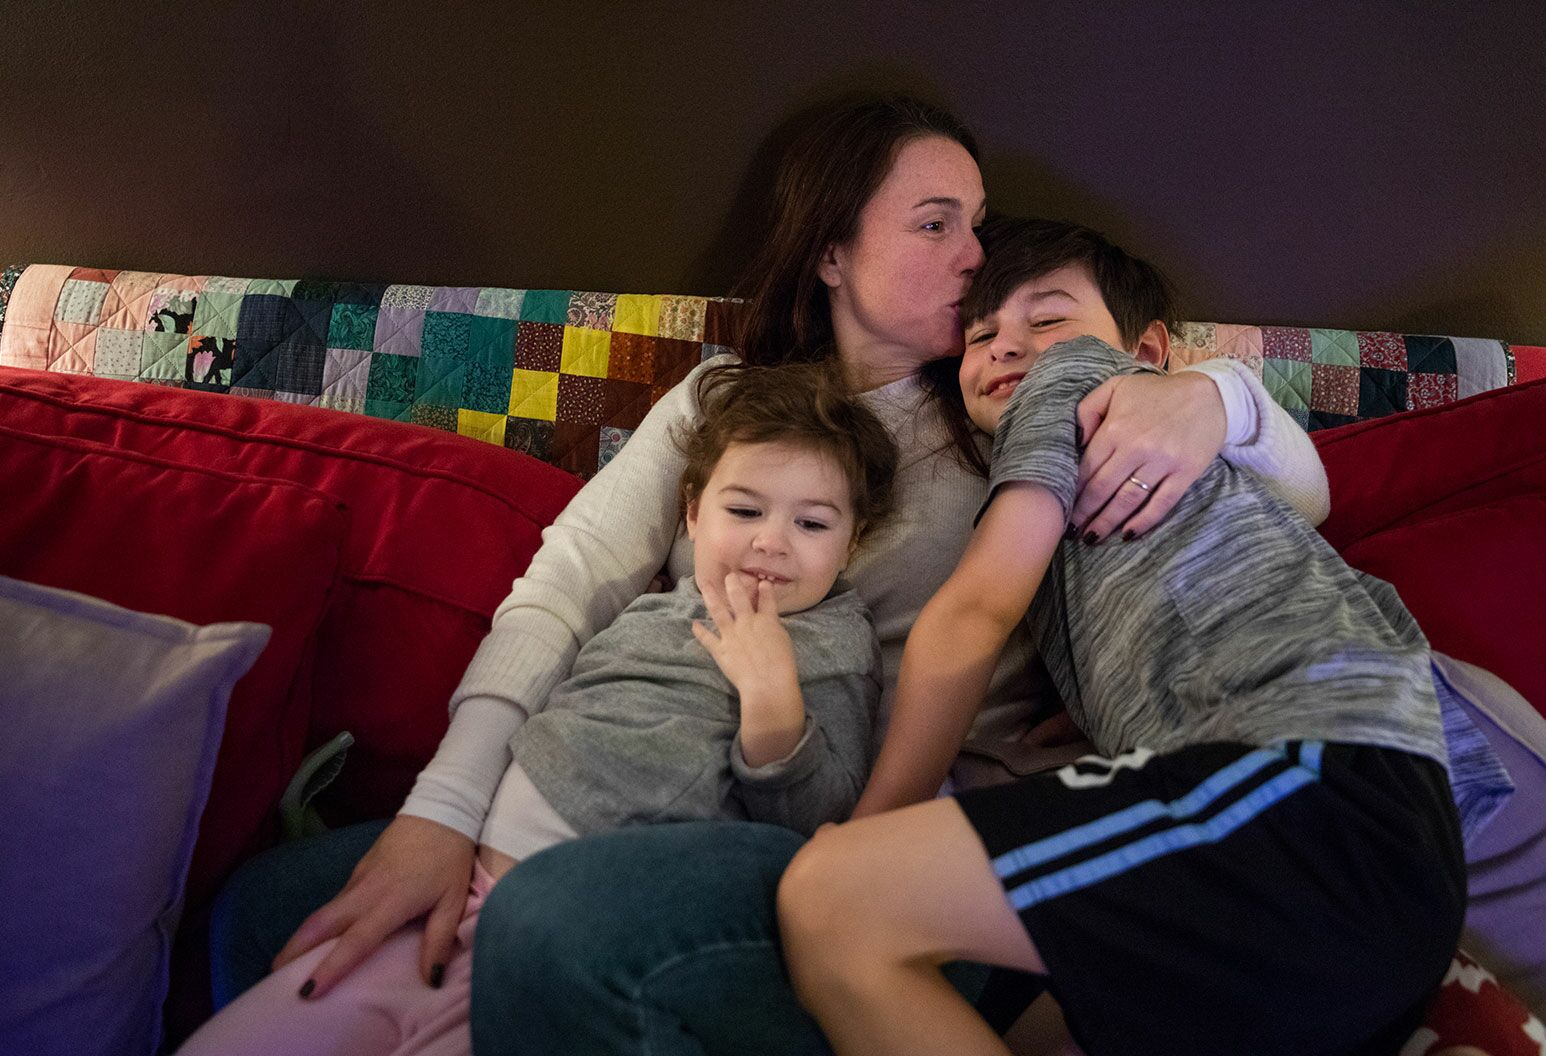 A woman with long auburn hair sits on a couch with a young girl and young teen boy sitting on top of them. She kisses the young teen on the forehead.